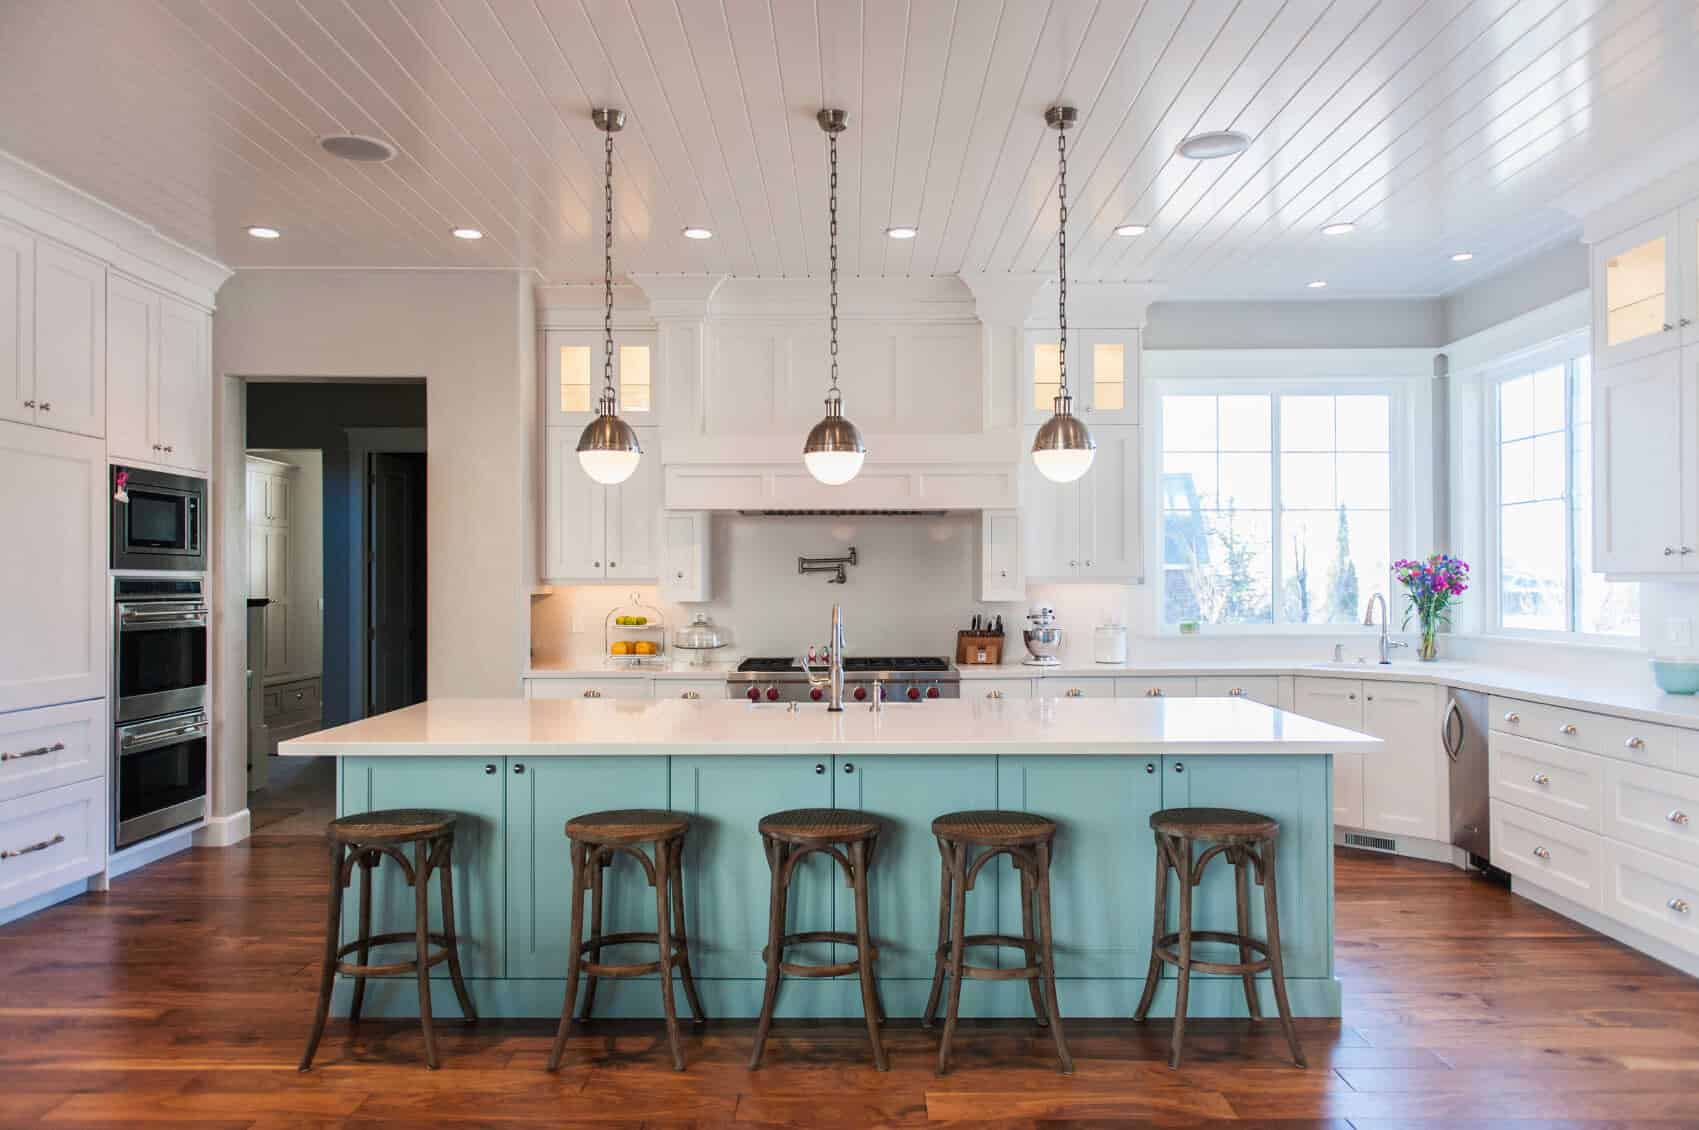 Beach style kitchen showcases an aqua central island bar lined with wooden chairs and hanging glass globe pendants. It is surrounded with white cabinetry and stainless steel appliances.